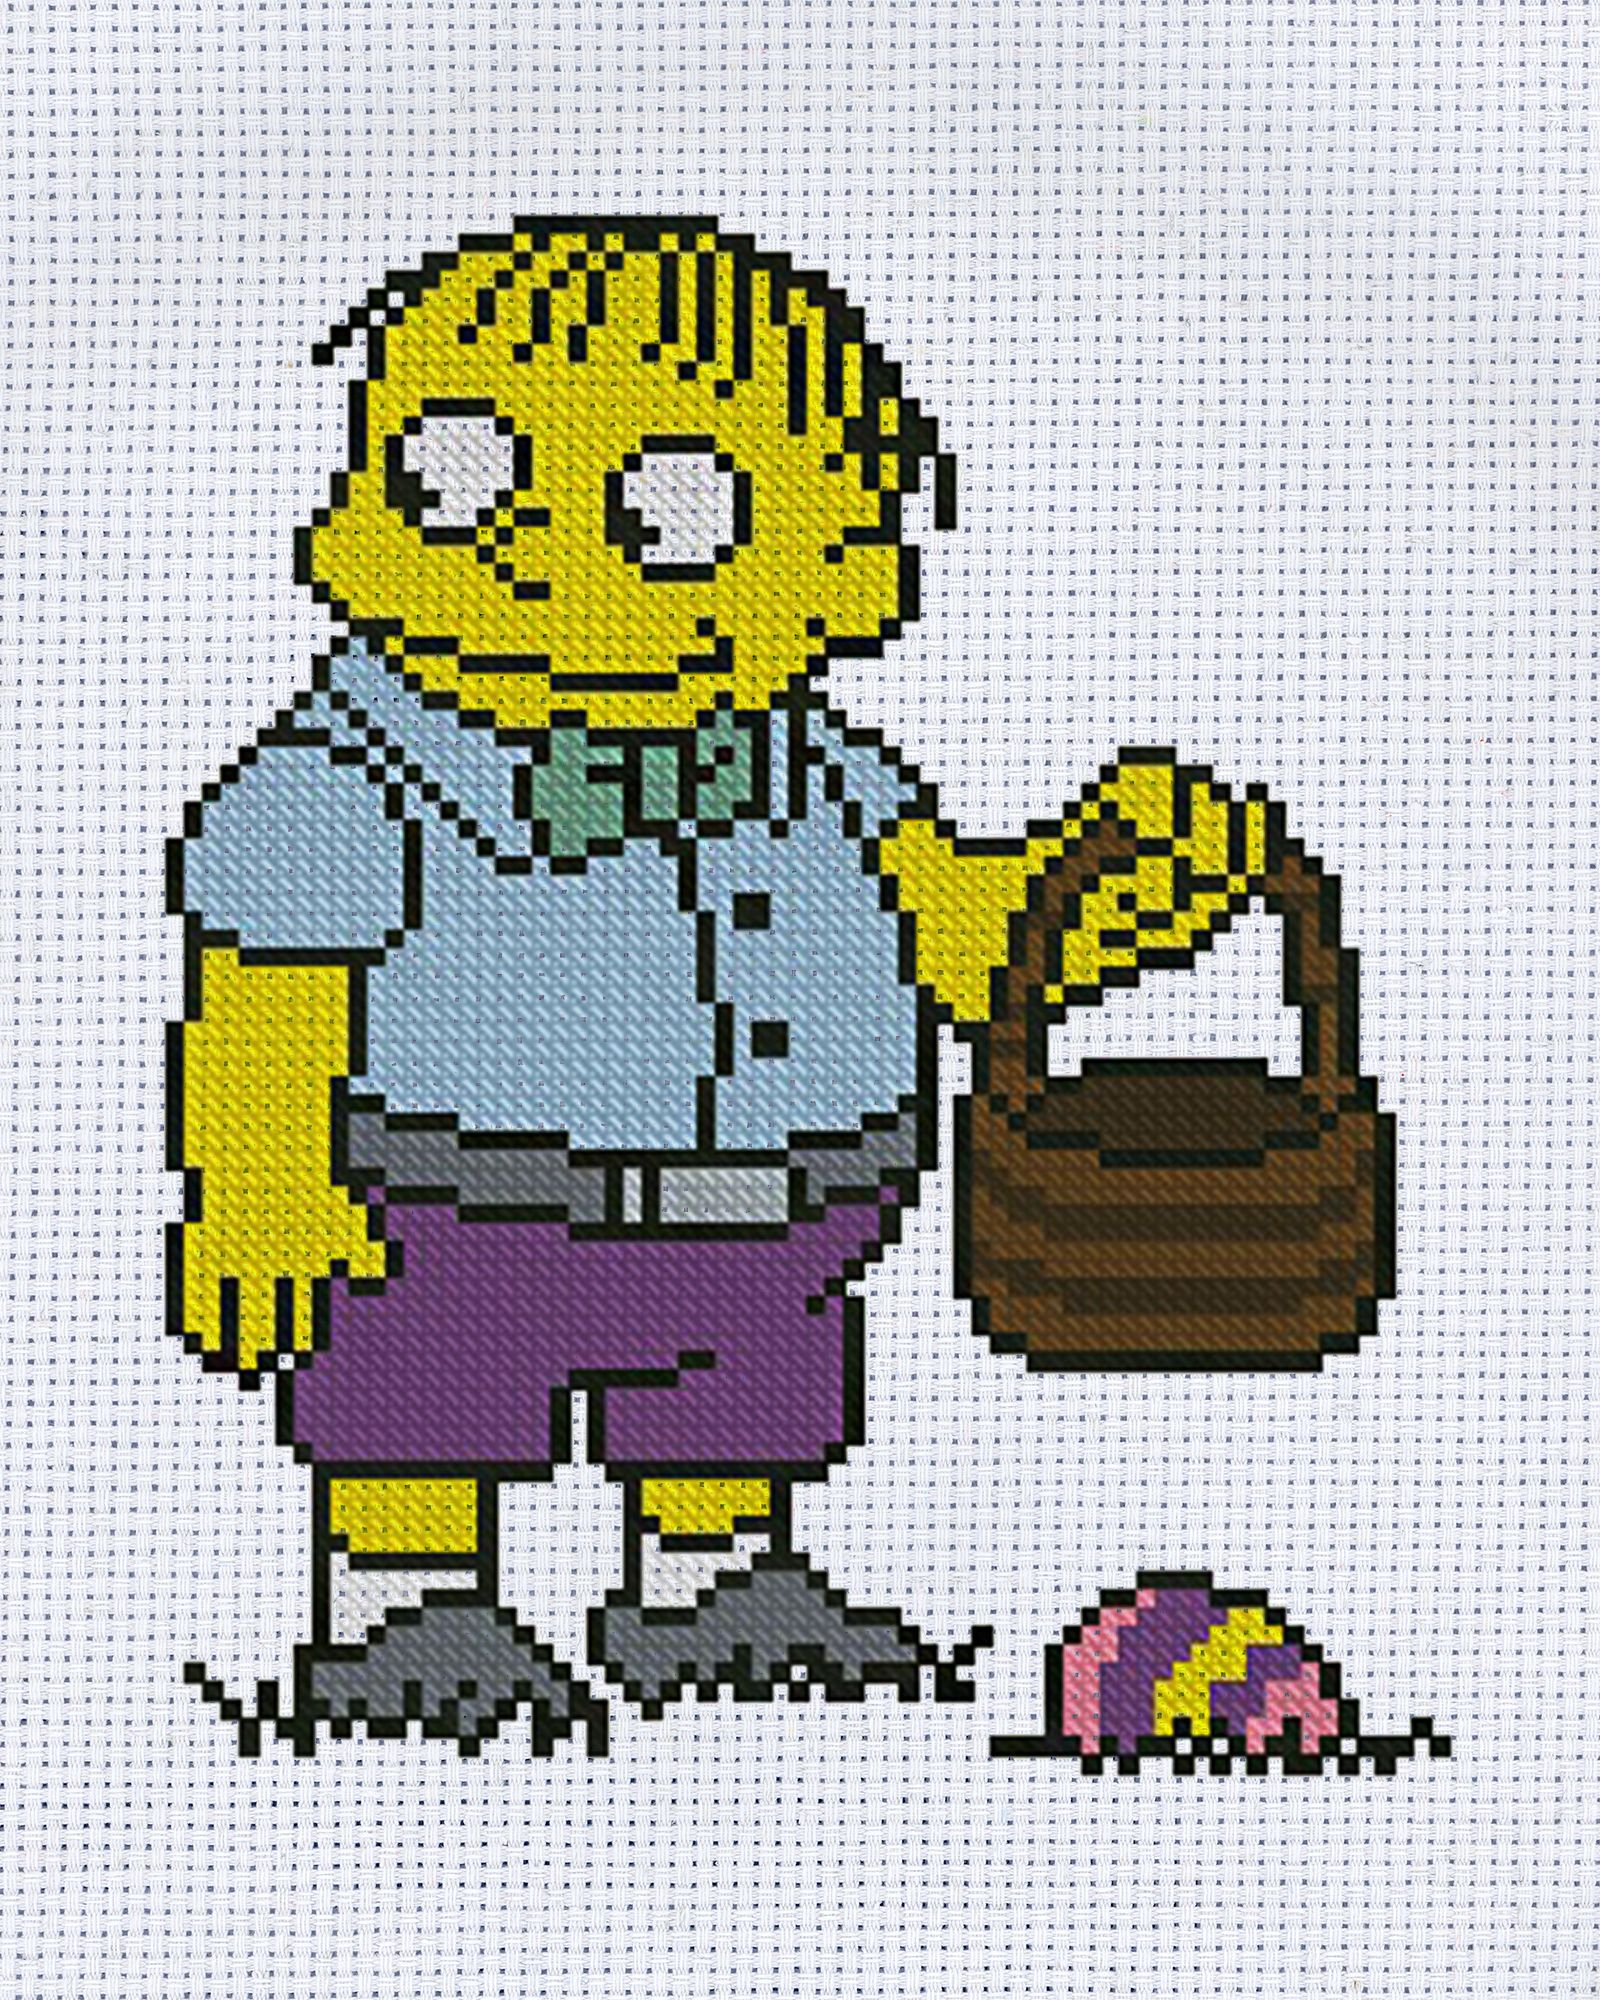 Ralph Wiggum The Simpsons Happy Easter Cross Stitch